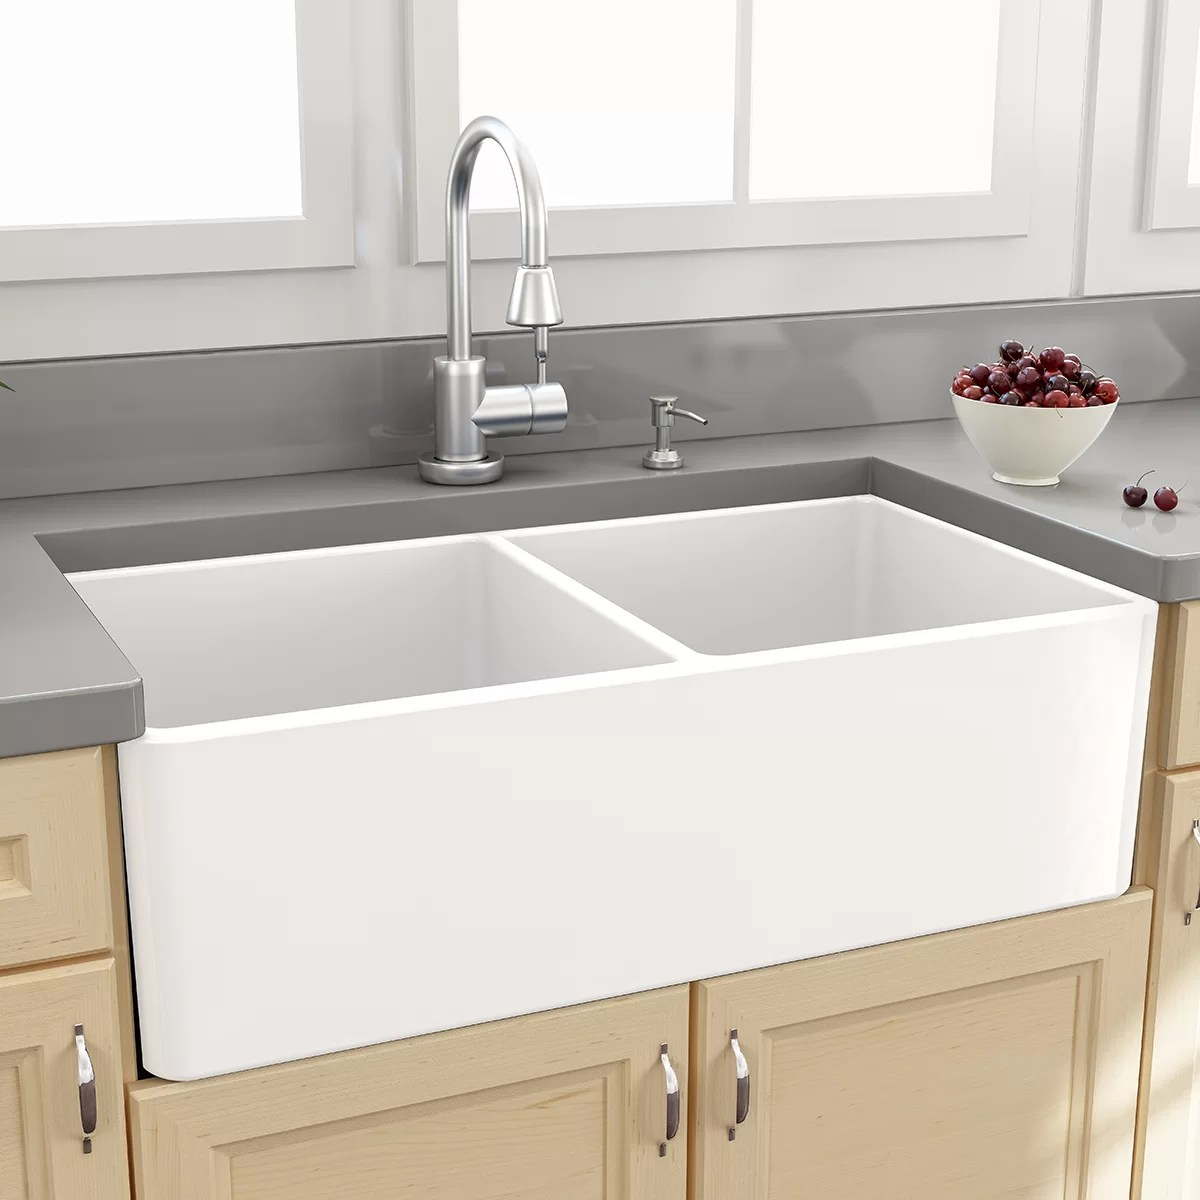 Nantucket Sinks Cape 33 x 18 Double Bowl Kitchen Sink with Grids